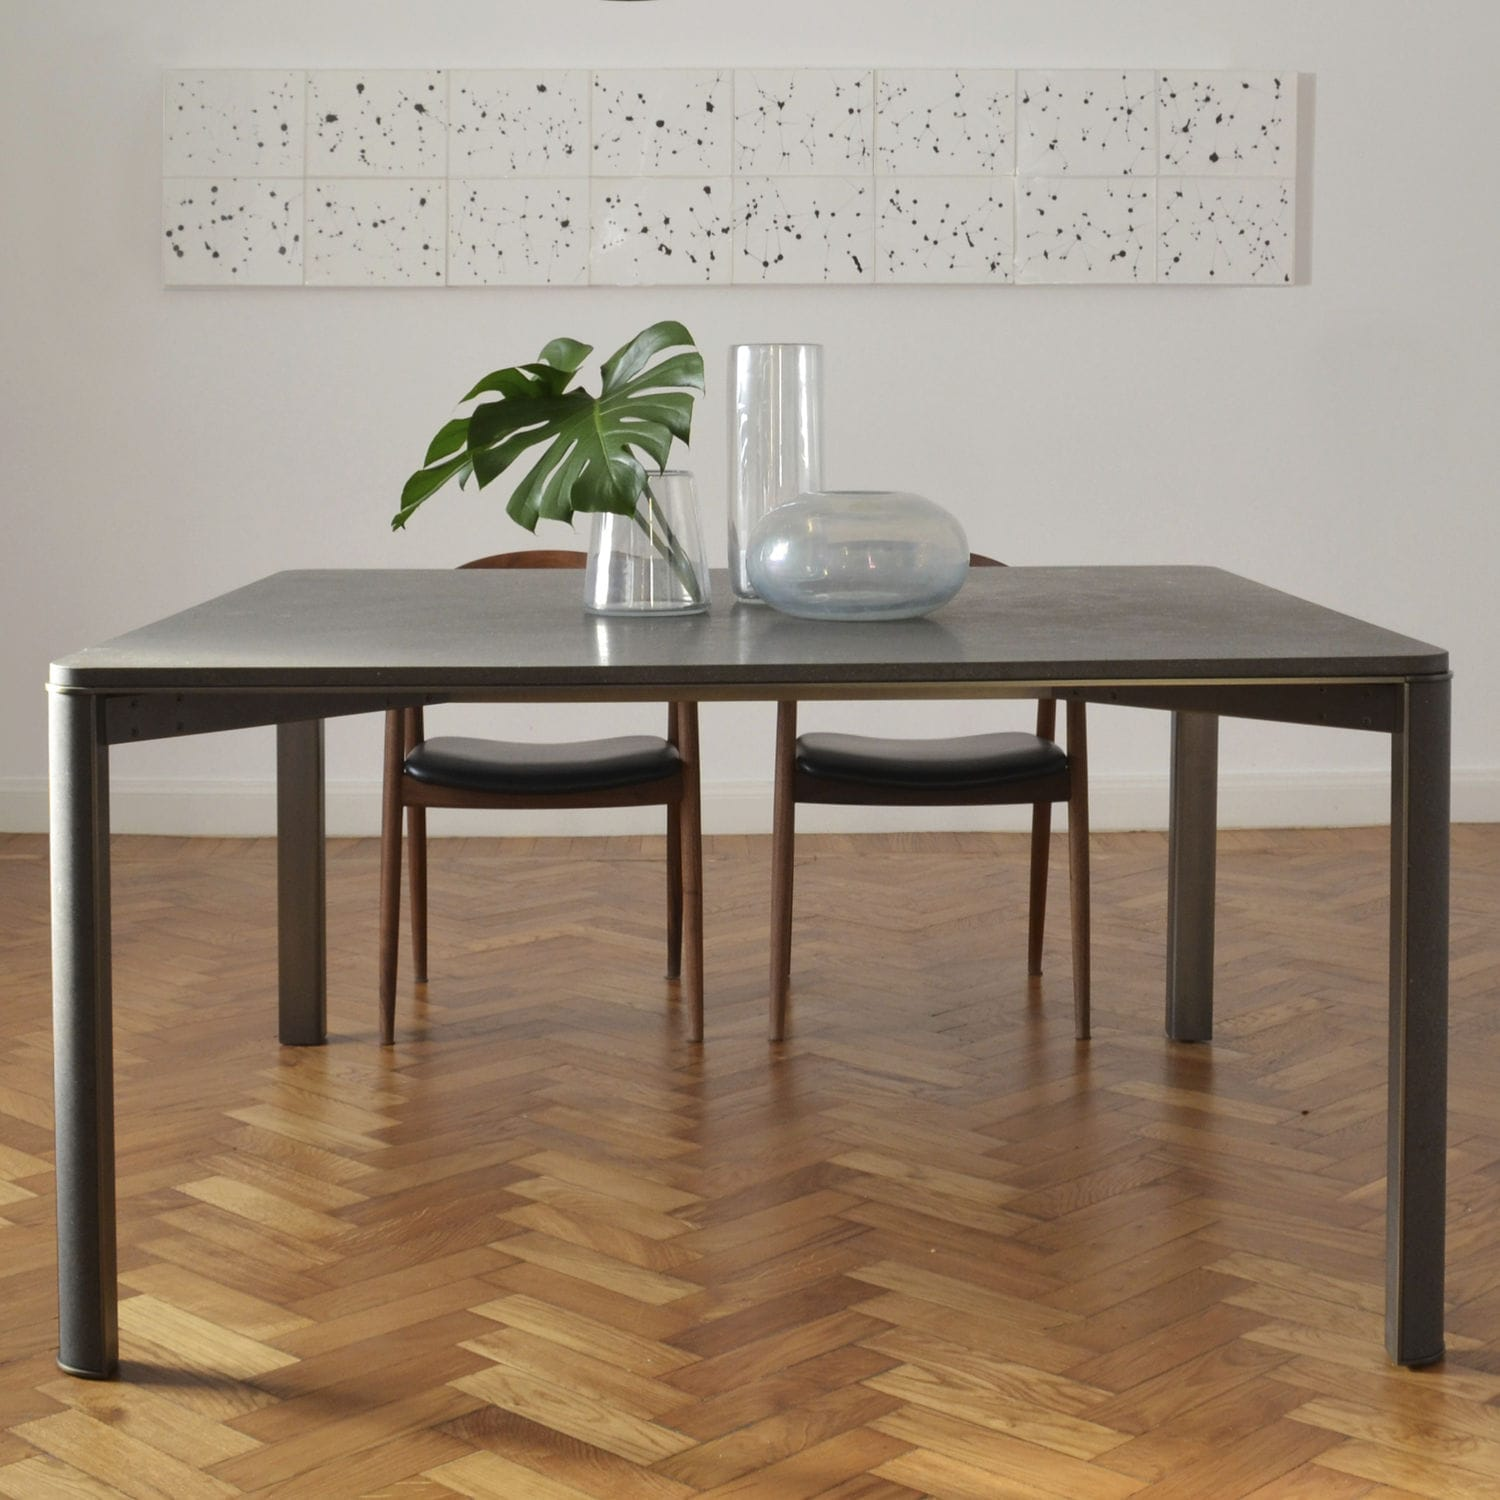 Contemporary stone dining table -  Contemporary Dining Table Marble Natural Stone Basalt Gregorio By Monica Geronimi Mg12